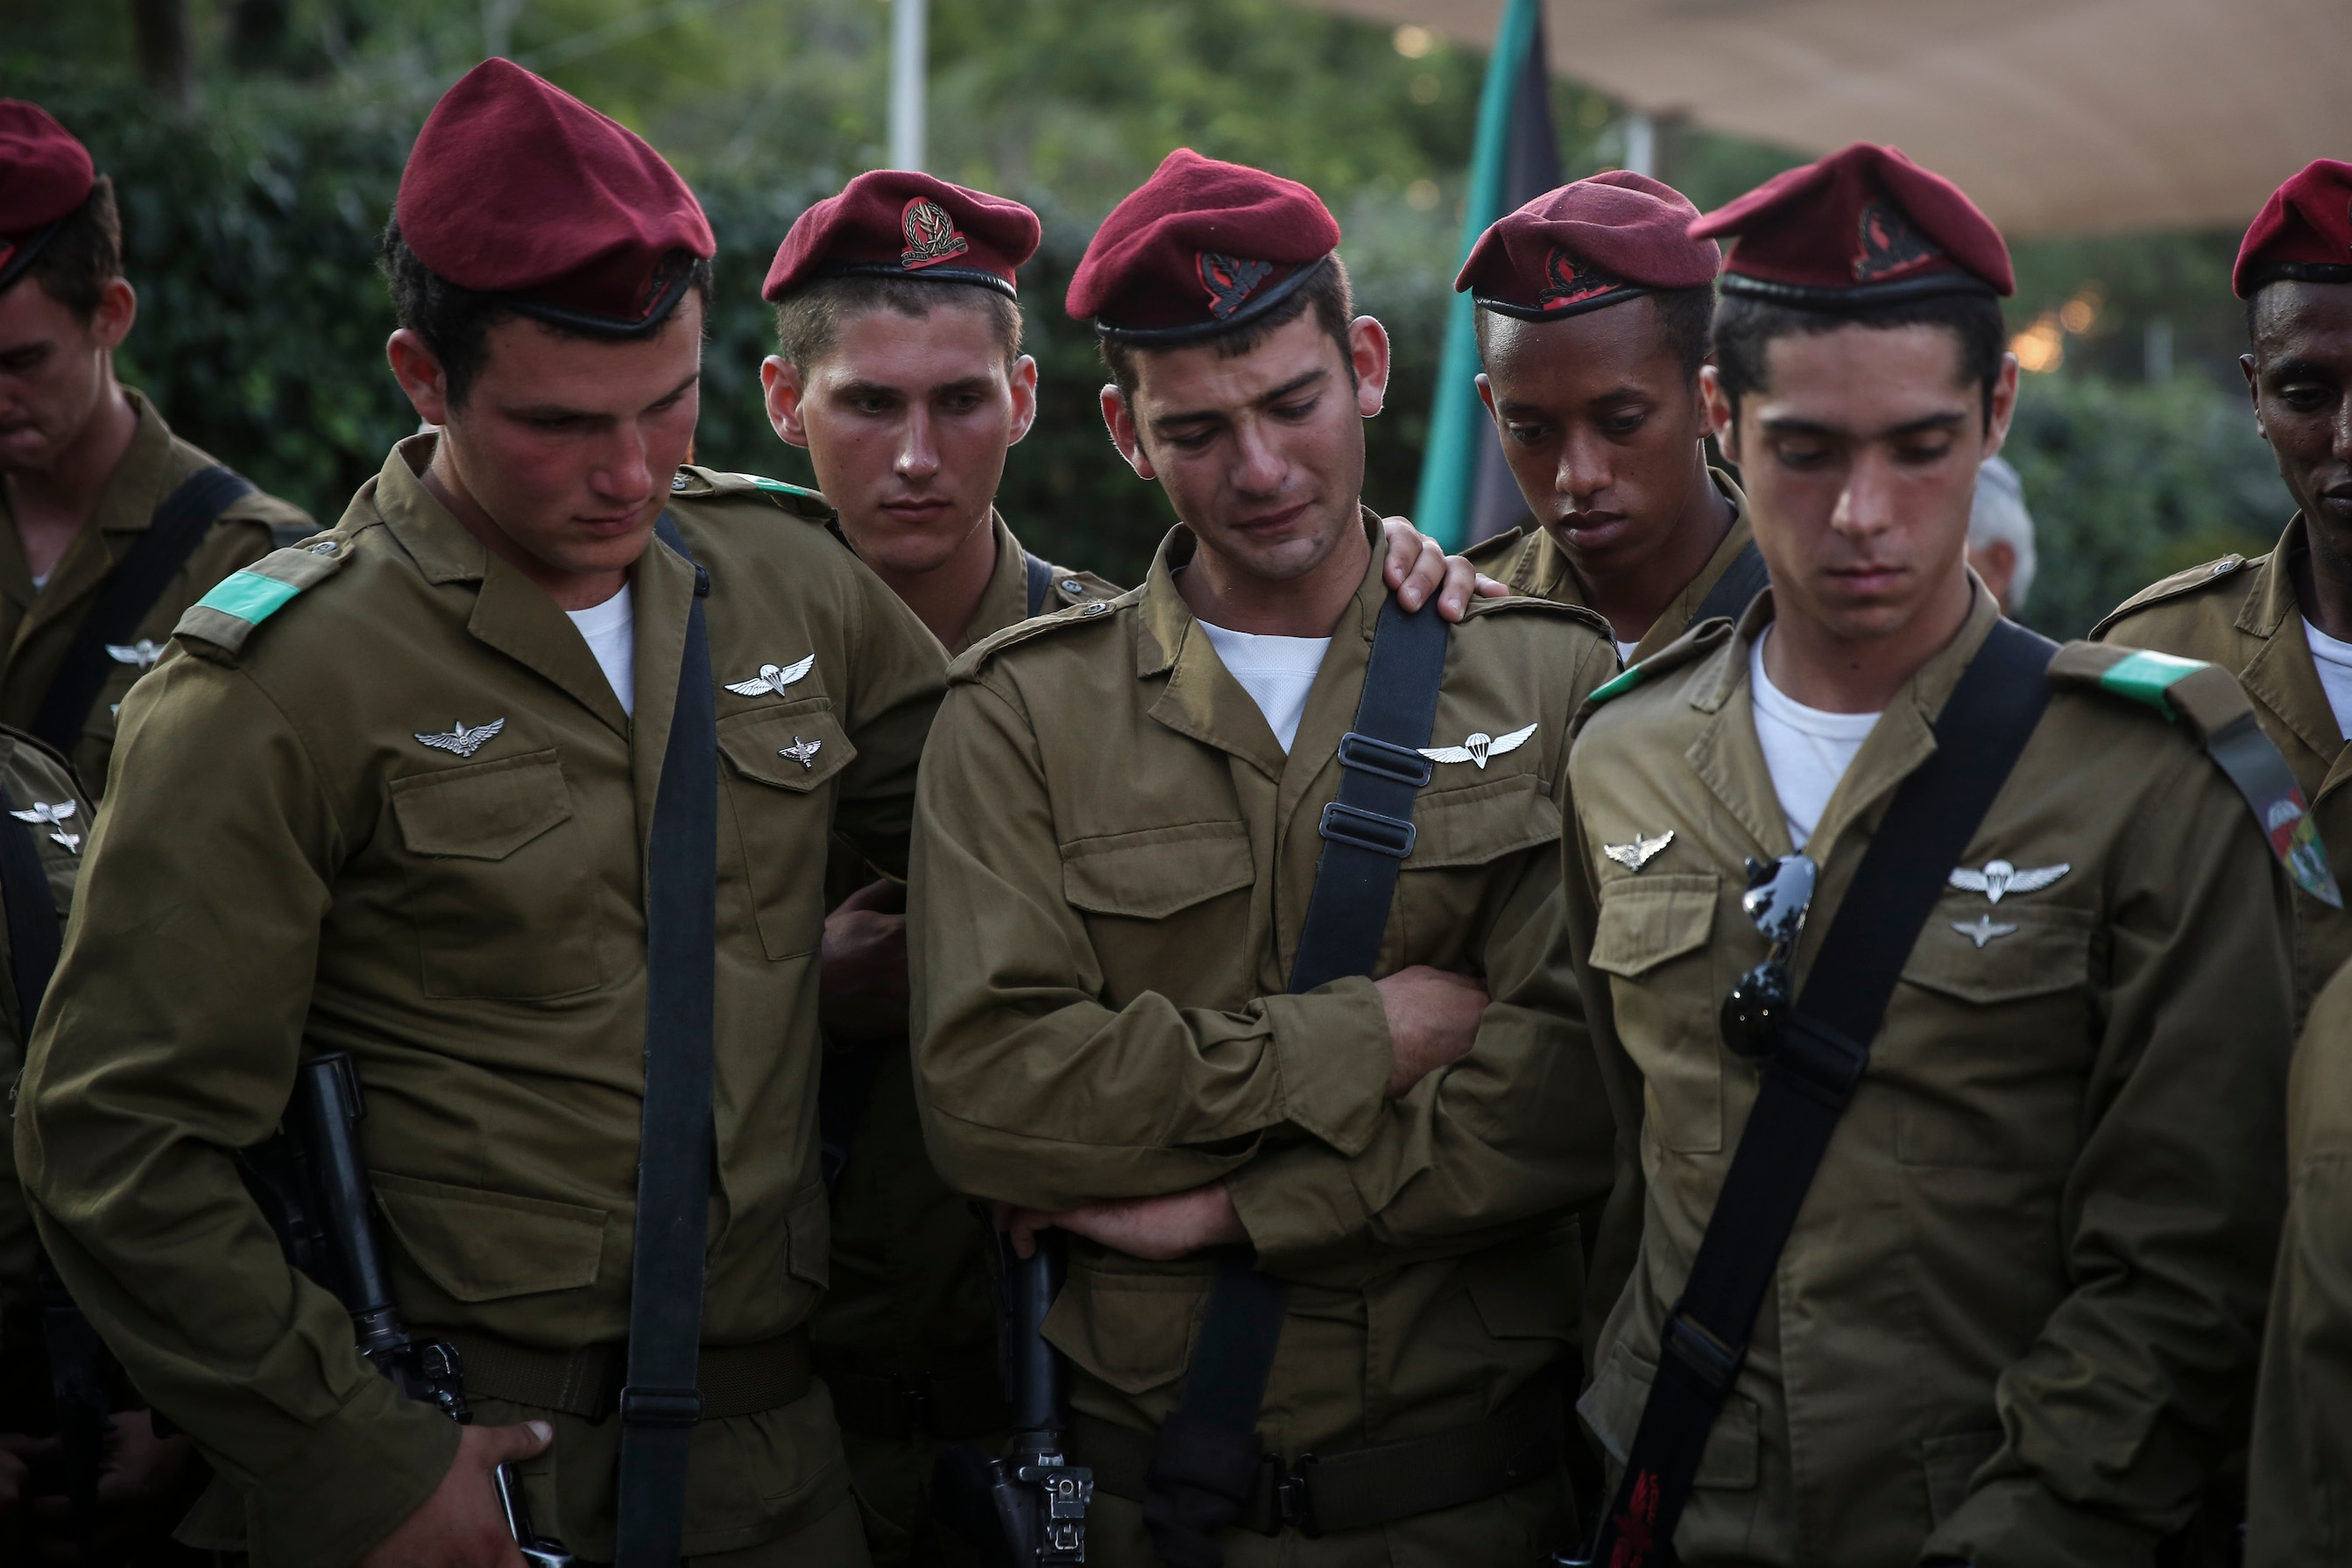 Israeli soldiers attending a ceremony at the Mount Herzl Military Cemetery in Jerusalem honoring Lee Matt, who died in July while fighting in Gaza, Aug. 21, 2014. (Hadas Parush/Flash90)